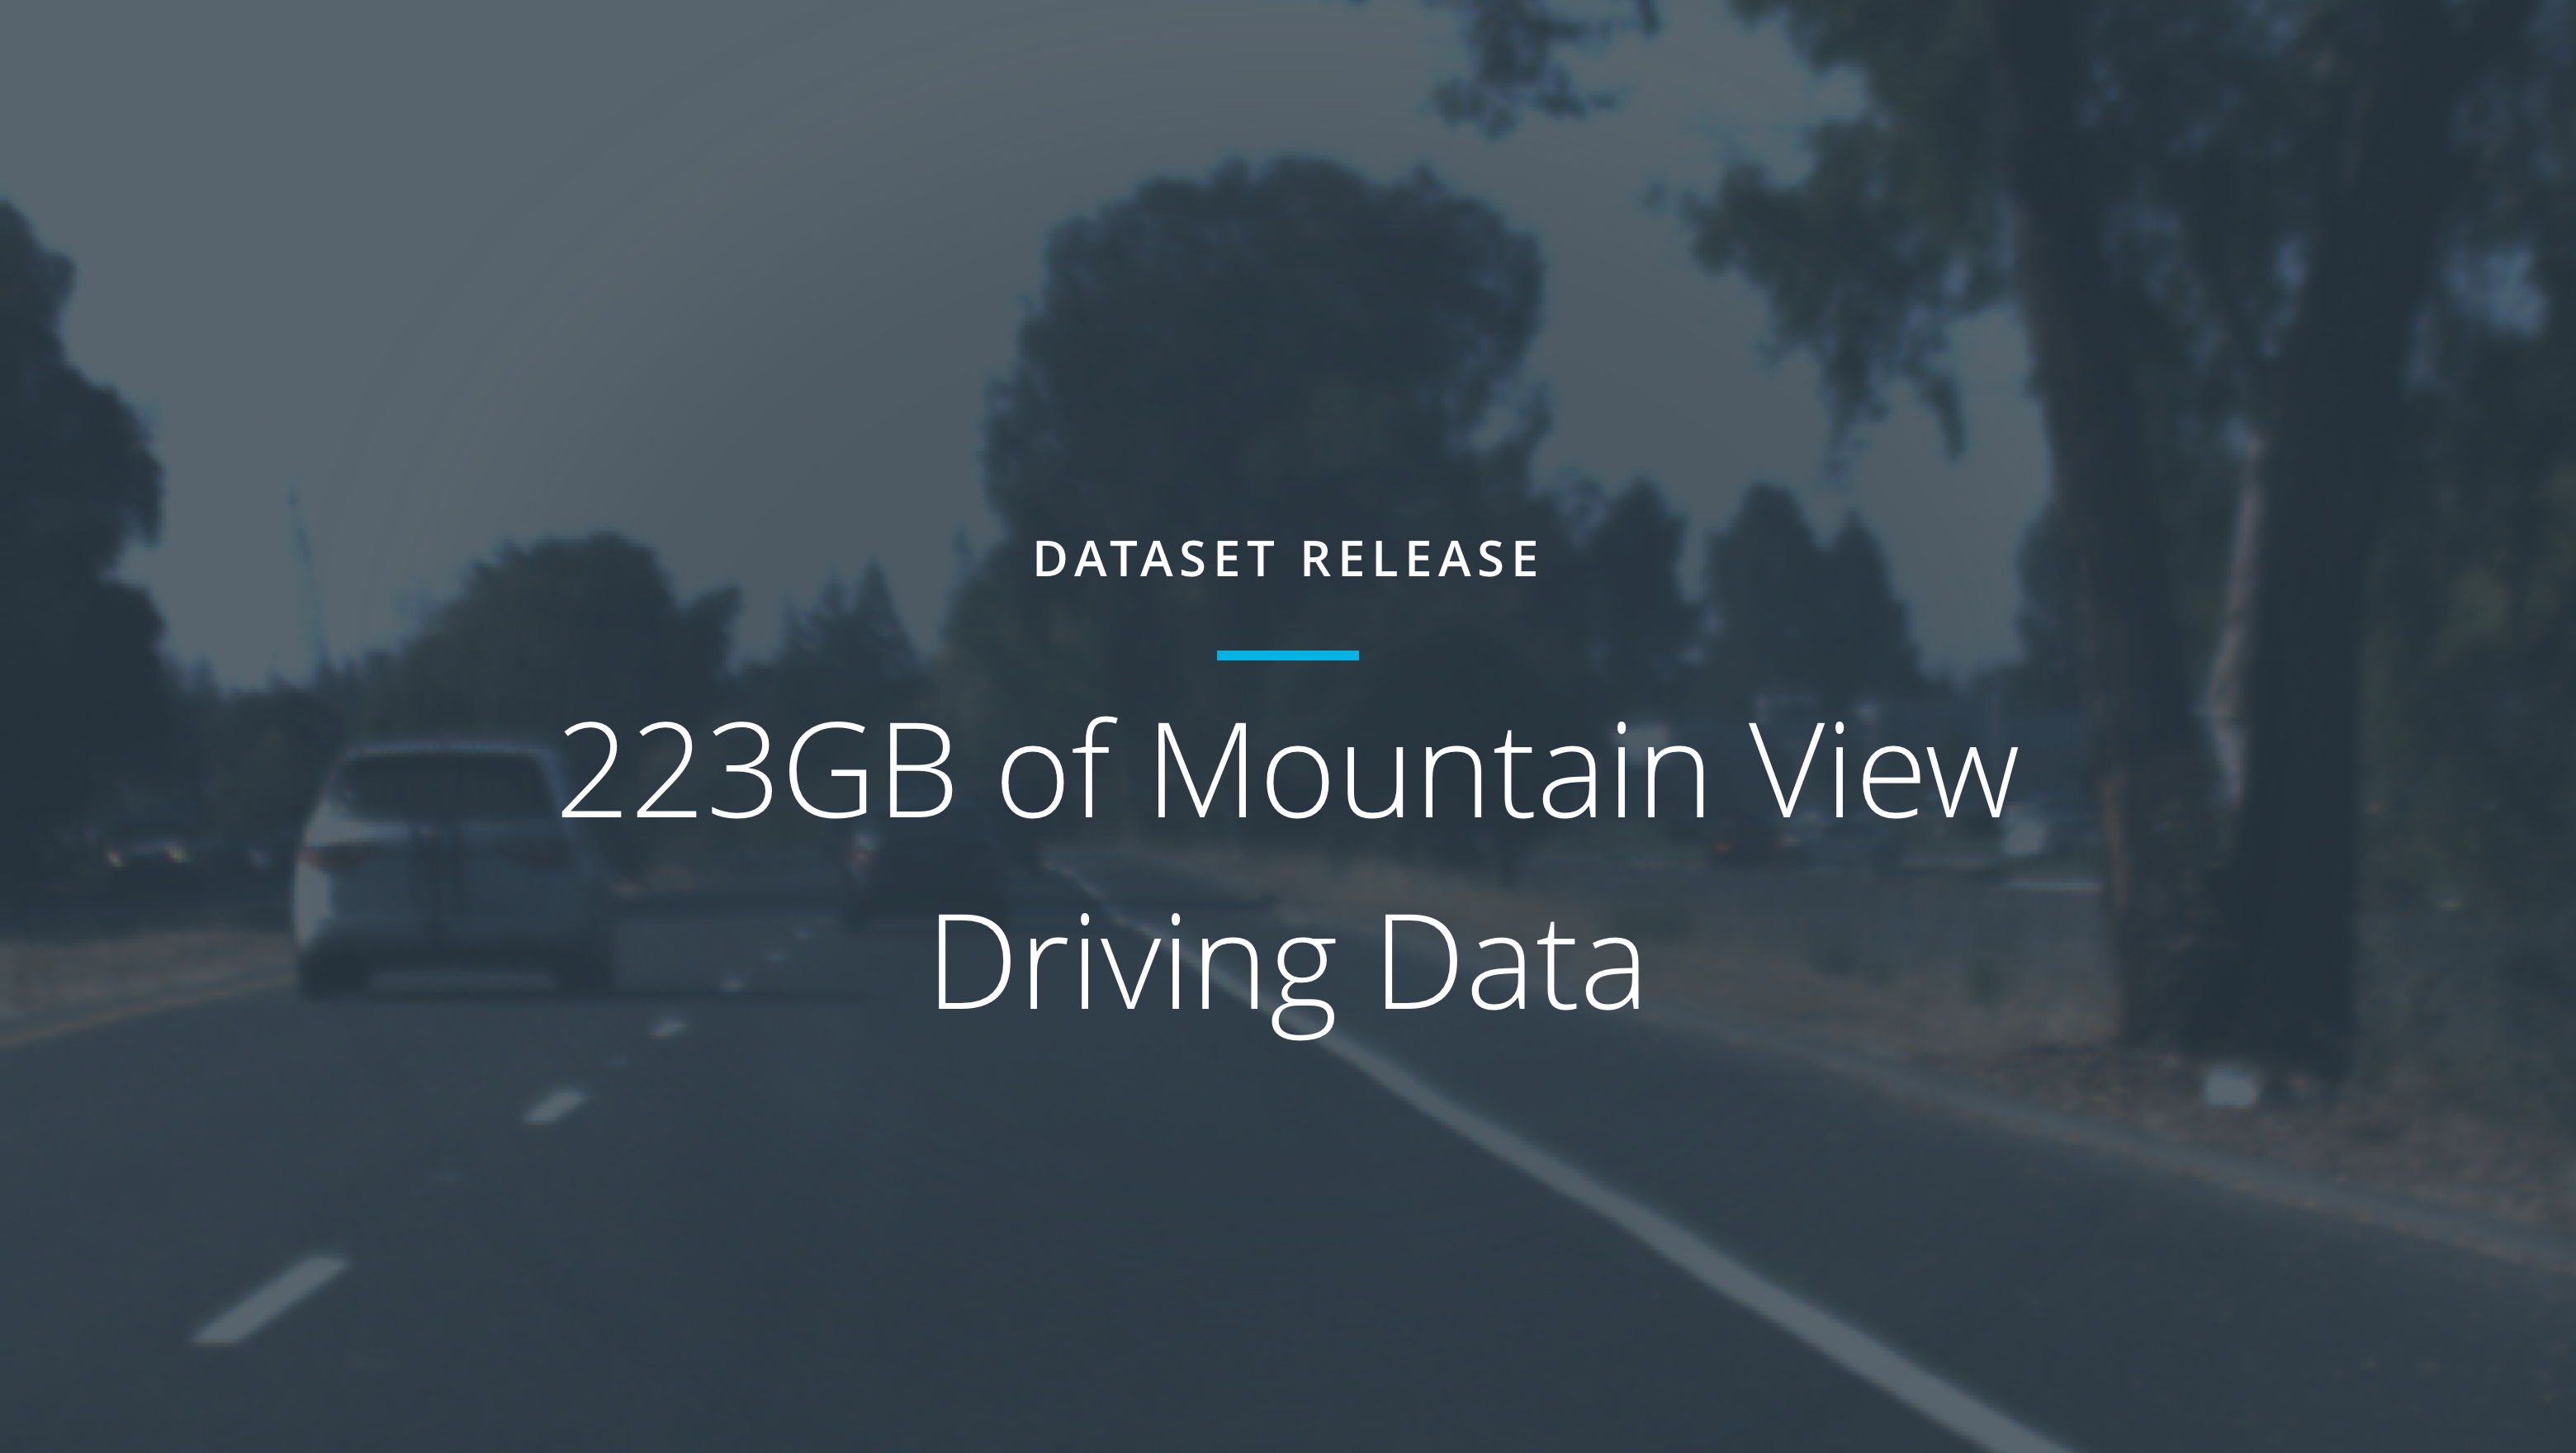 Open Sourcing 223GB of Driving Data - Udacity Inc - Medium